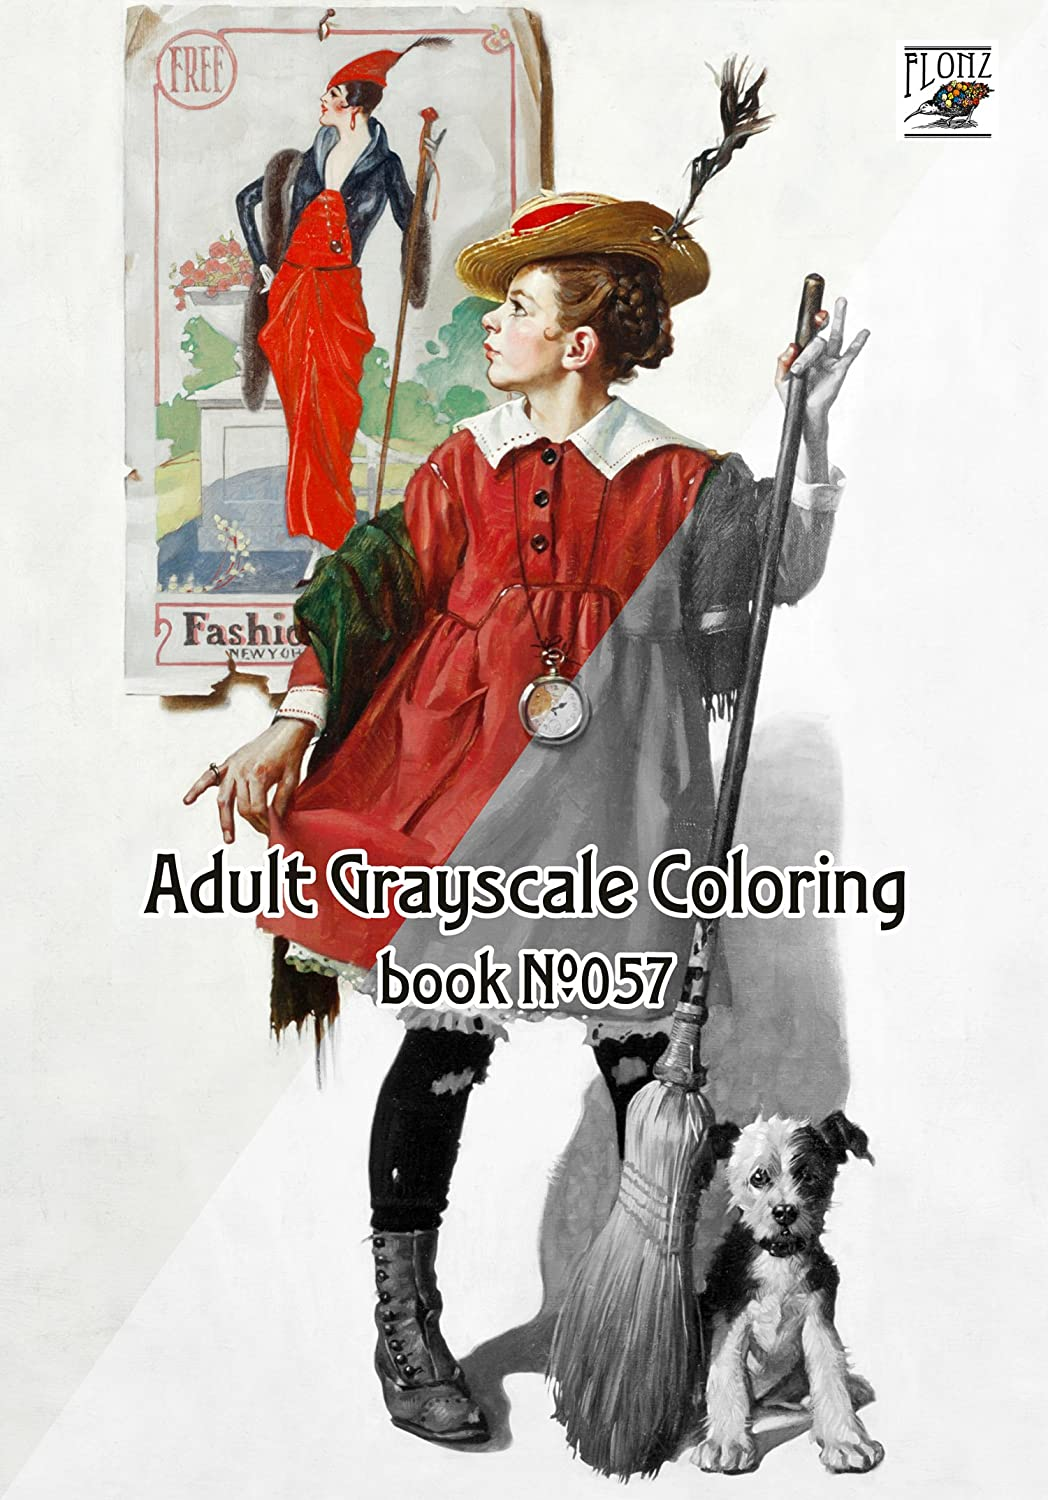 Funny Girls by Norman Rockwell FLONZ Vintage Designs for Grayscale Coloring 24 pages 8x11//A4 Adult Coloring Book